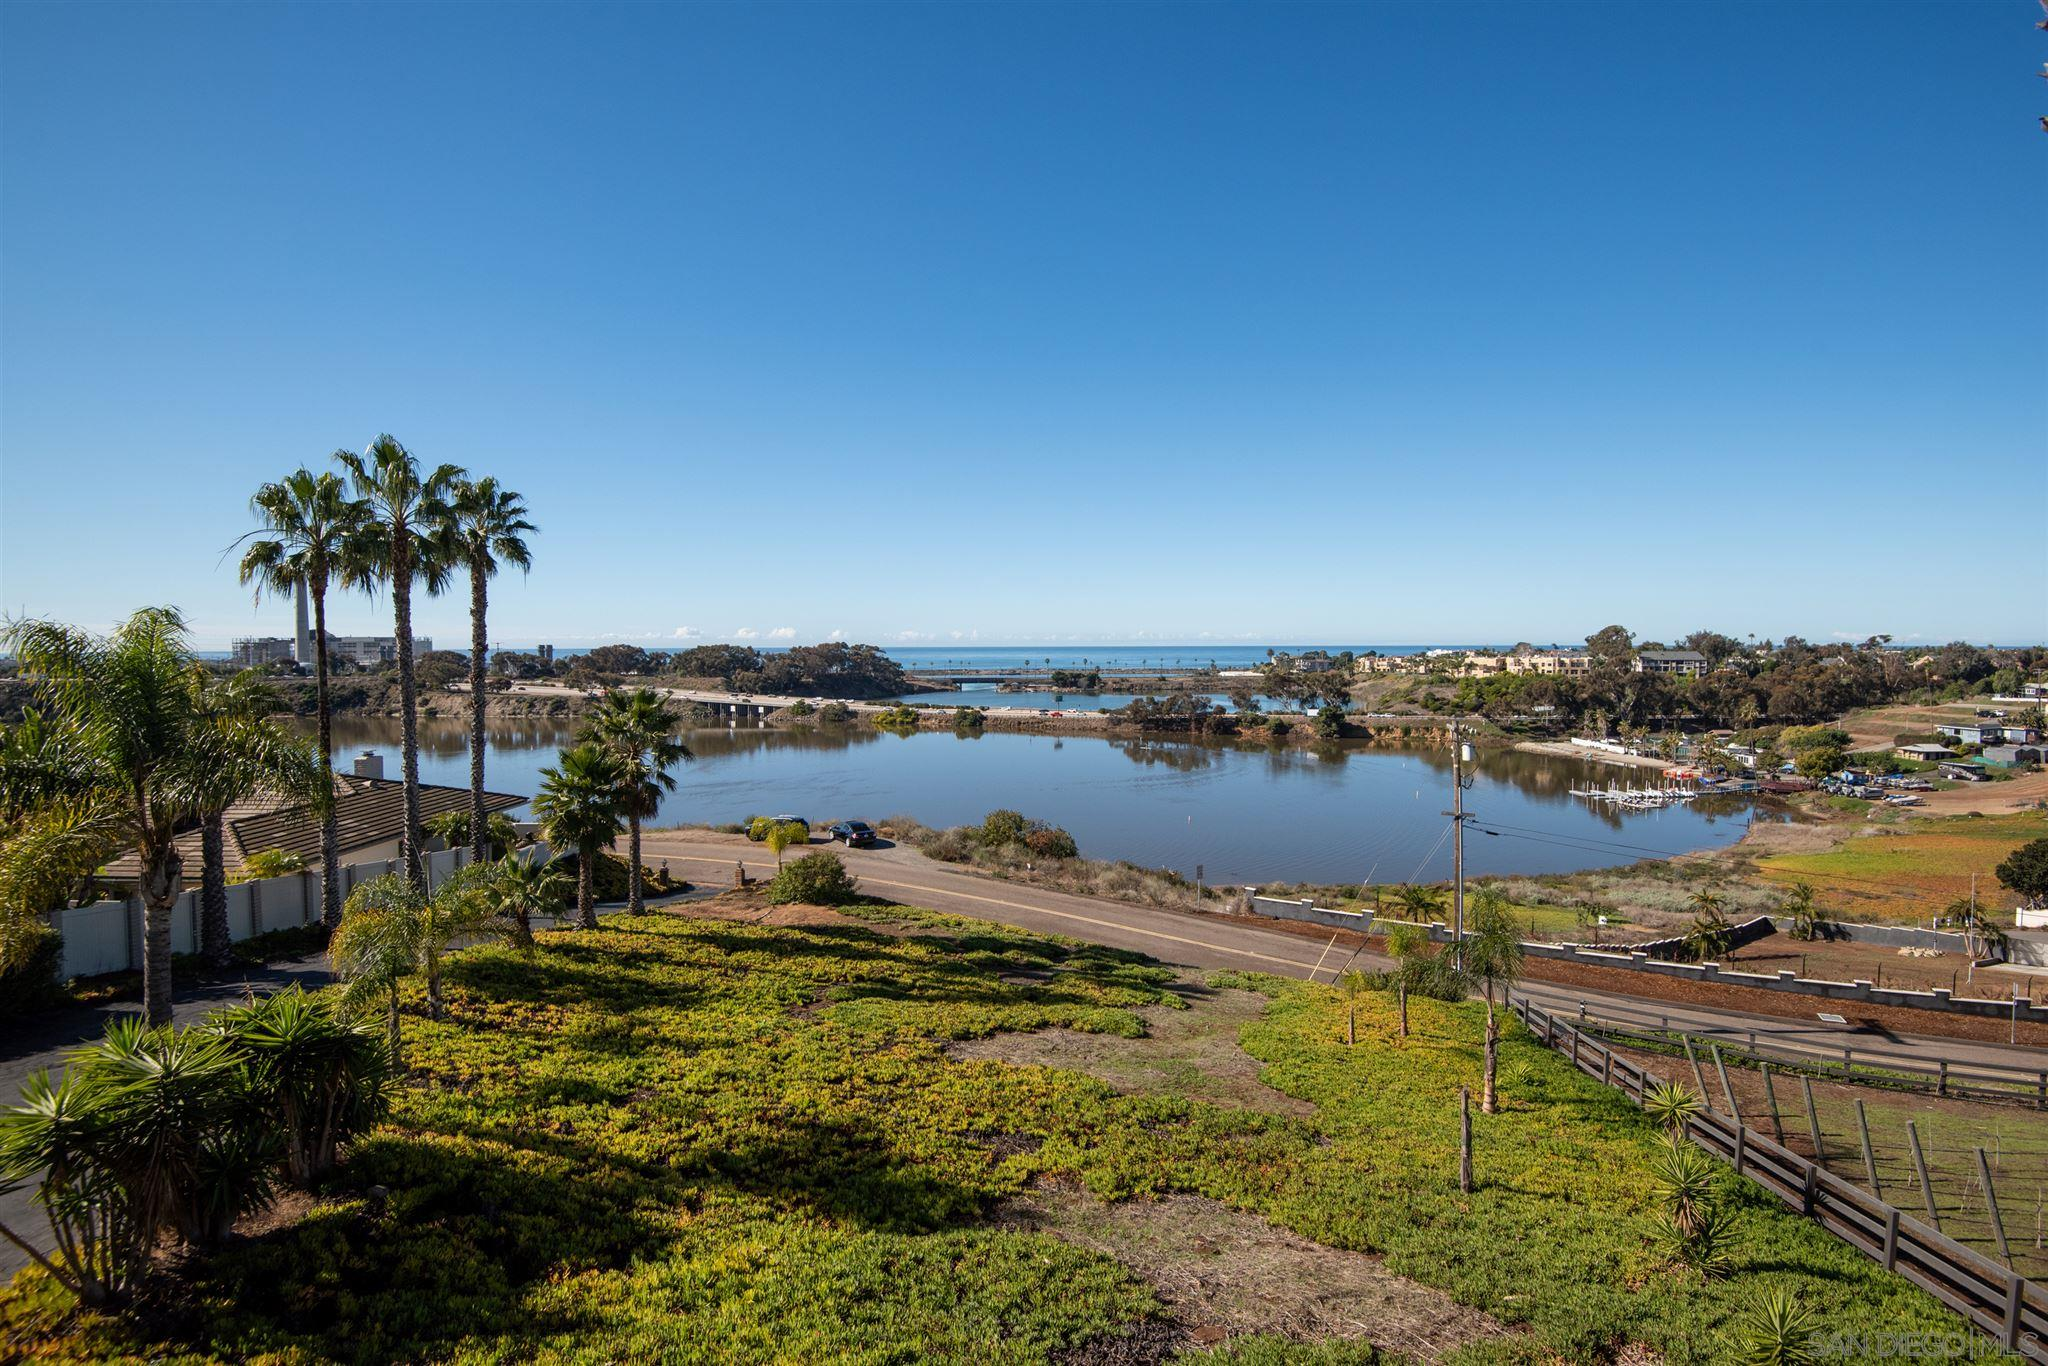 """W-O-W!!! You won't believe your eyes when you see this  enormous, 180 degree, uninterrupted ocean & lagoon view. This 27,007 SF lot is the last property before the lagoon, so there are no rooftops in your site - just the beautiful layers of the lagoon out to sweeping ocean & horizon panoramas - making it the ultimate view property. This hilltop property was handpicked by the owners 40+ years ago and offers a rare opportunity to remodel or build on one of the best sites in the area.Rich with warmth and character, this custom-built home has beautiful vaulted, wood beamed ceilings, 2 brick fireplaces, private master with west facing balcony, 2 guest suites on the main level plus a den/office/gym, detached oversized 2 car garage, & fenced backyard. Guests enter the home from the front door into the formal entry while family has easy access directly off the driveway into the kitchen. Bright and spacious, it opens to a large dining area and generous living room with picturesque windows providing ample light and fantastic scenery. A combination laundry/utility/mud room connects the kitchen to the fenced backyard and pedestrian door to the garage that can double as a workshop and has plenty of storage space. Designed for privacy, the second floor is set apart as the master suite and has a sitting area with fireplace, walk-in closet, makeup vanity, and a walk-out balcony with commanding views. The covered front porch is the perfect spot for admiring the sunsets and overlooks the grounds which are ripe with potential and would be ideal for a vineyard. A truly magical location and a once-in-a-lifetime opportunity for those looking for the ultimate in views and a home with """"excellent bones""""."""